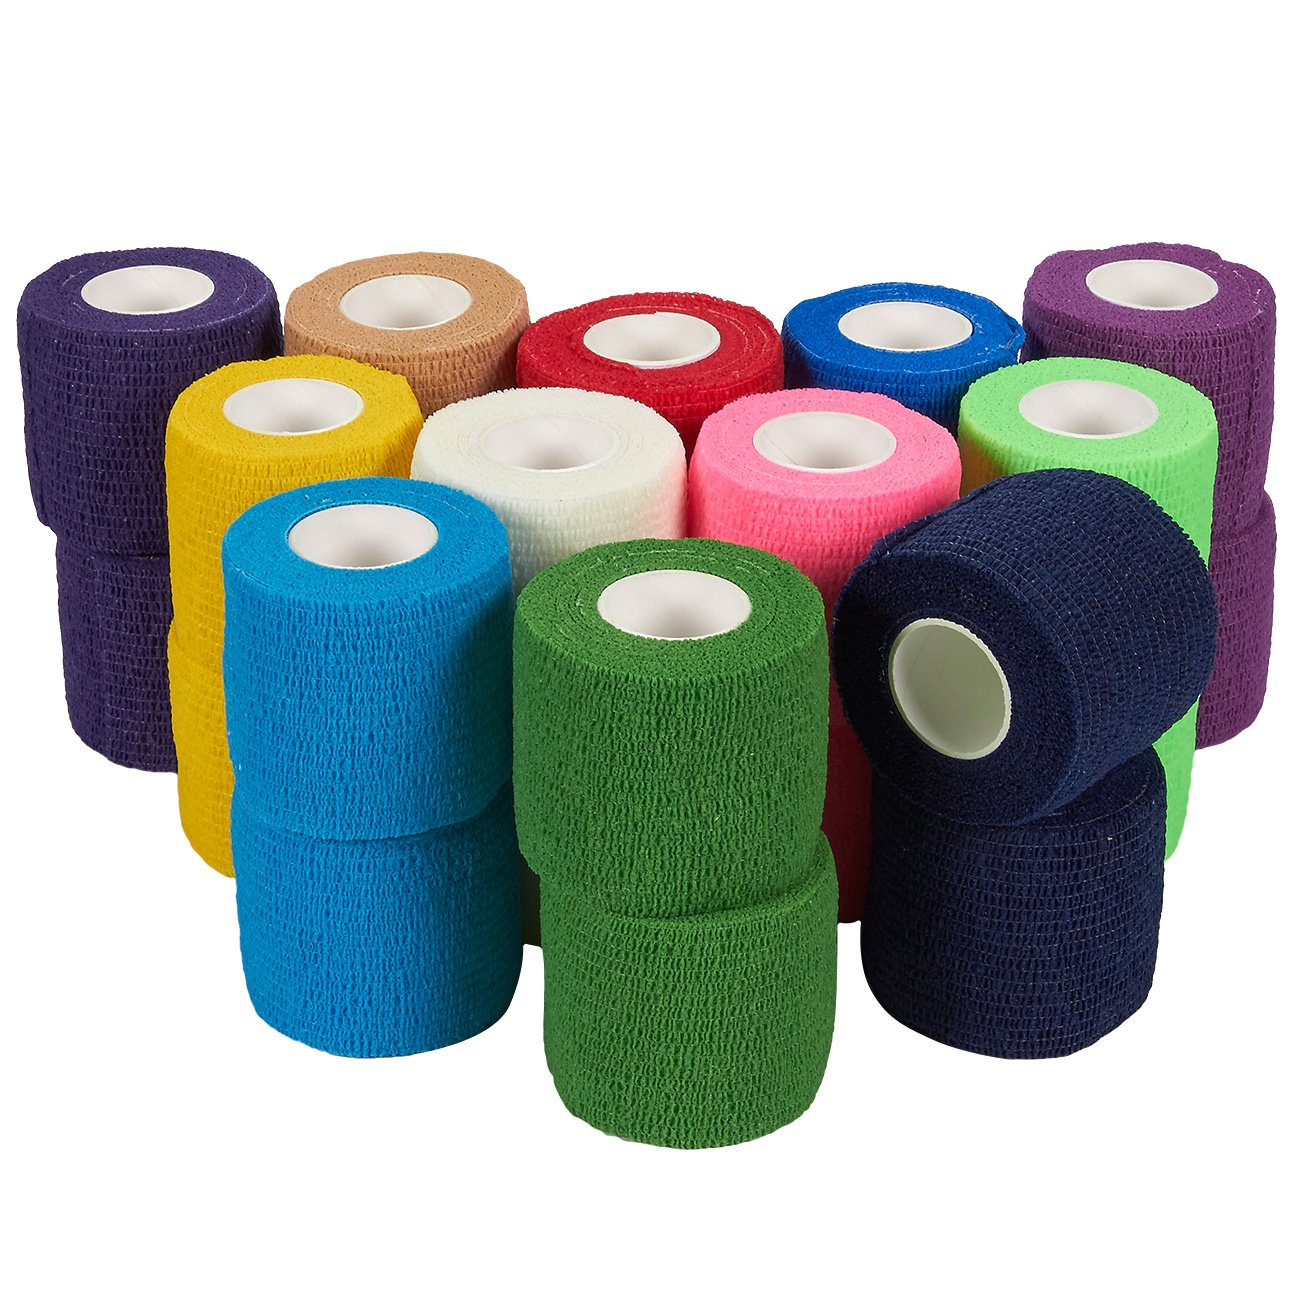 Self Adherent Wrap - 24 Pack of Cohesive Bandage Medical Vet Tape for First Aid, Sports, Wrist, Ankle in 12 Colors with 2 Rolls Each, 2 inches x 5 Yards